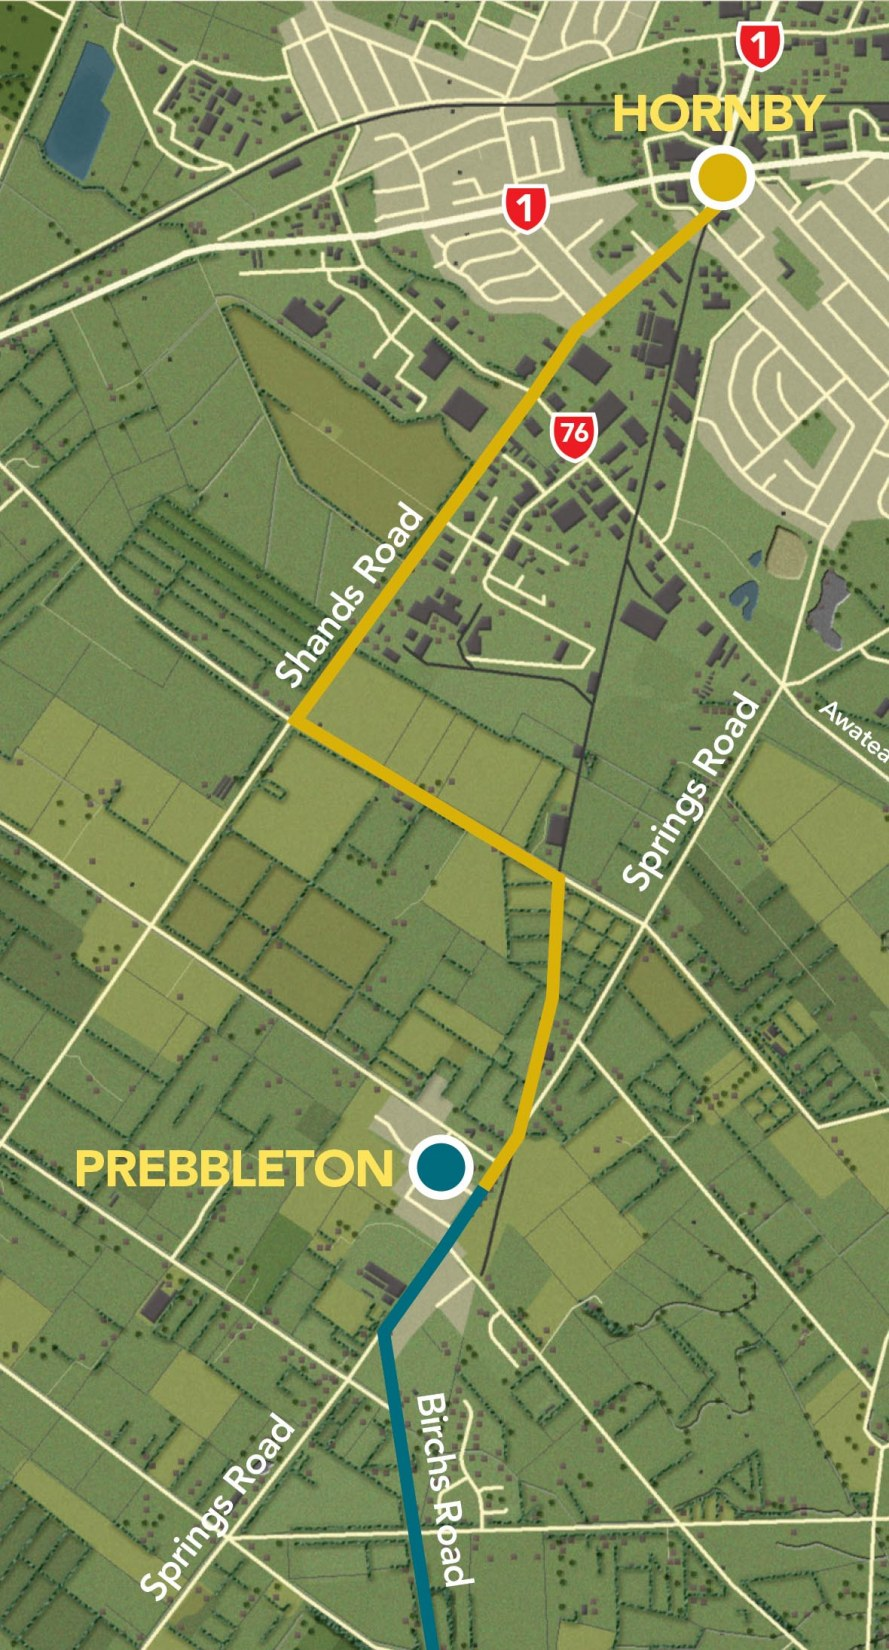 gallery/hornby to prebbleton map